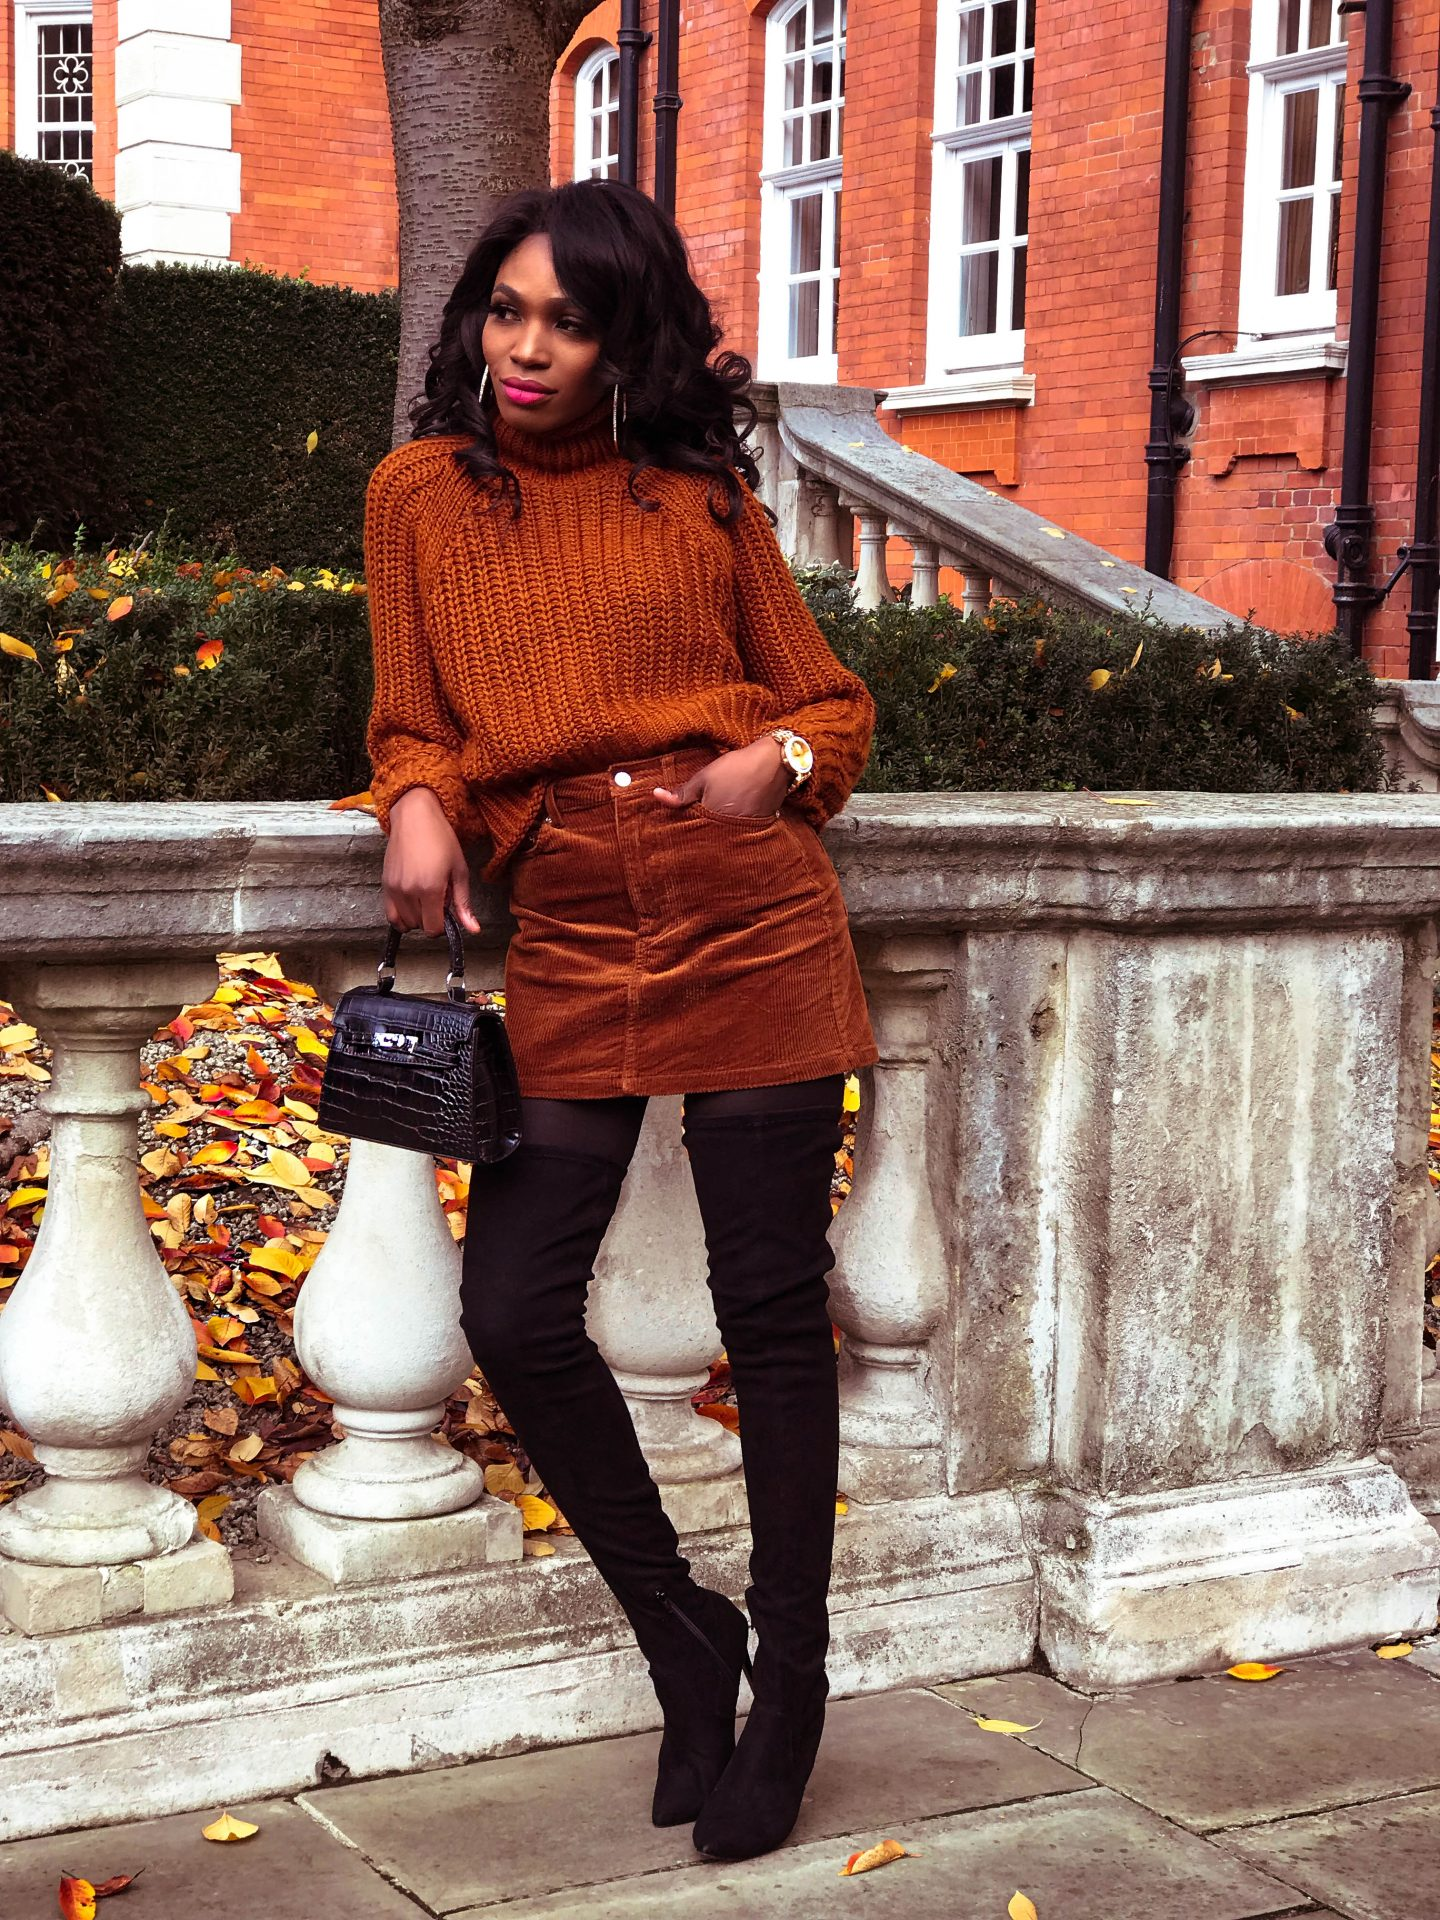 HOW TO WEAR A SHORT SKIRT IN WINTER